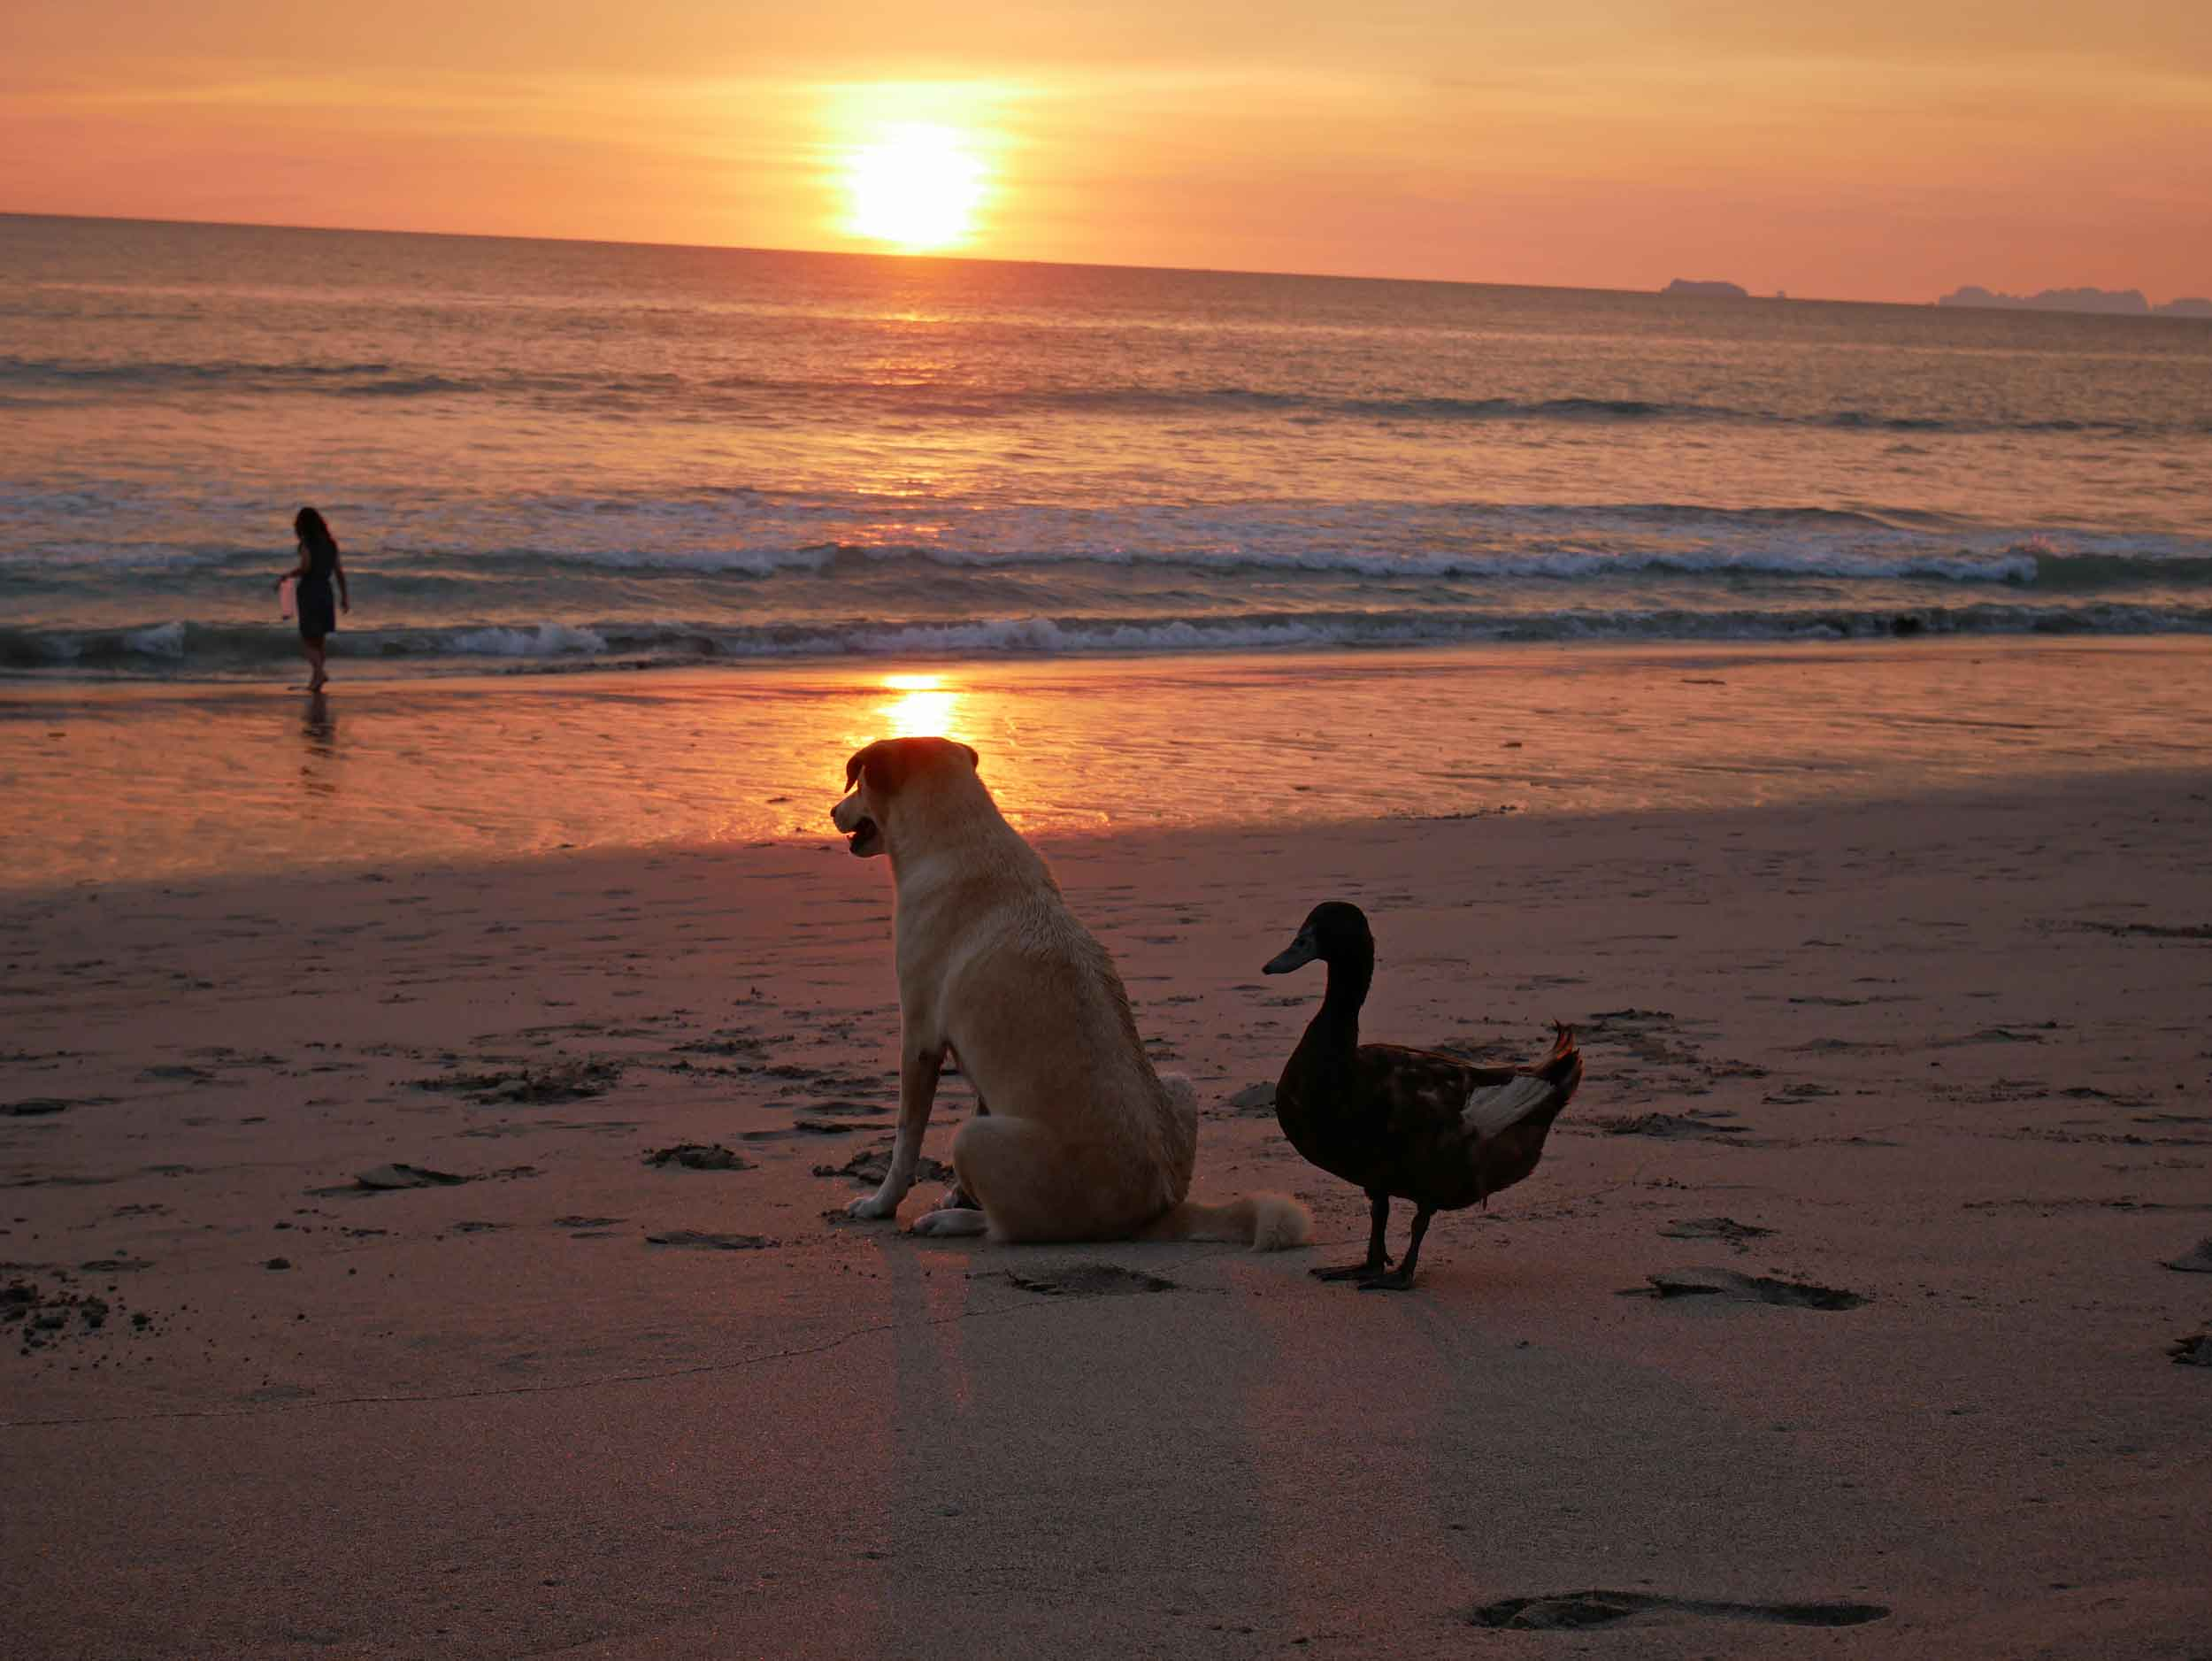 We couldn't stop giggling about the friendship between these two, who walked down the beach together and always stayed close.